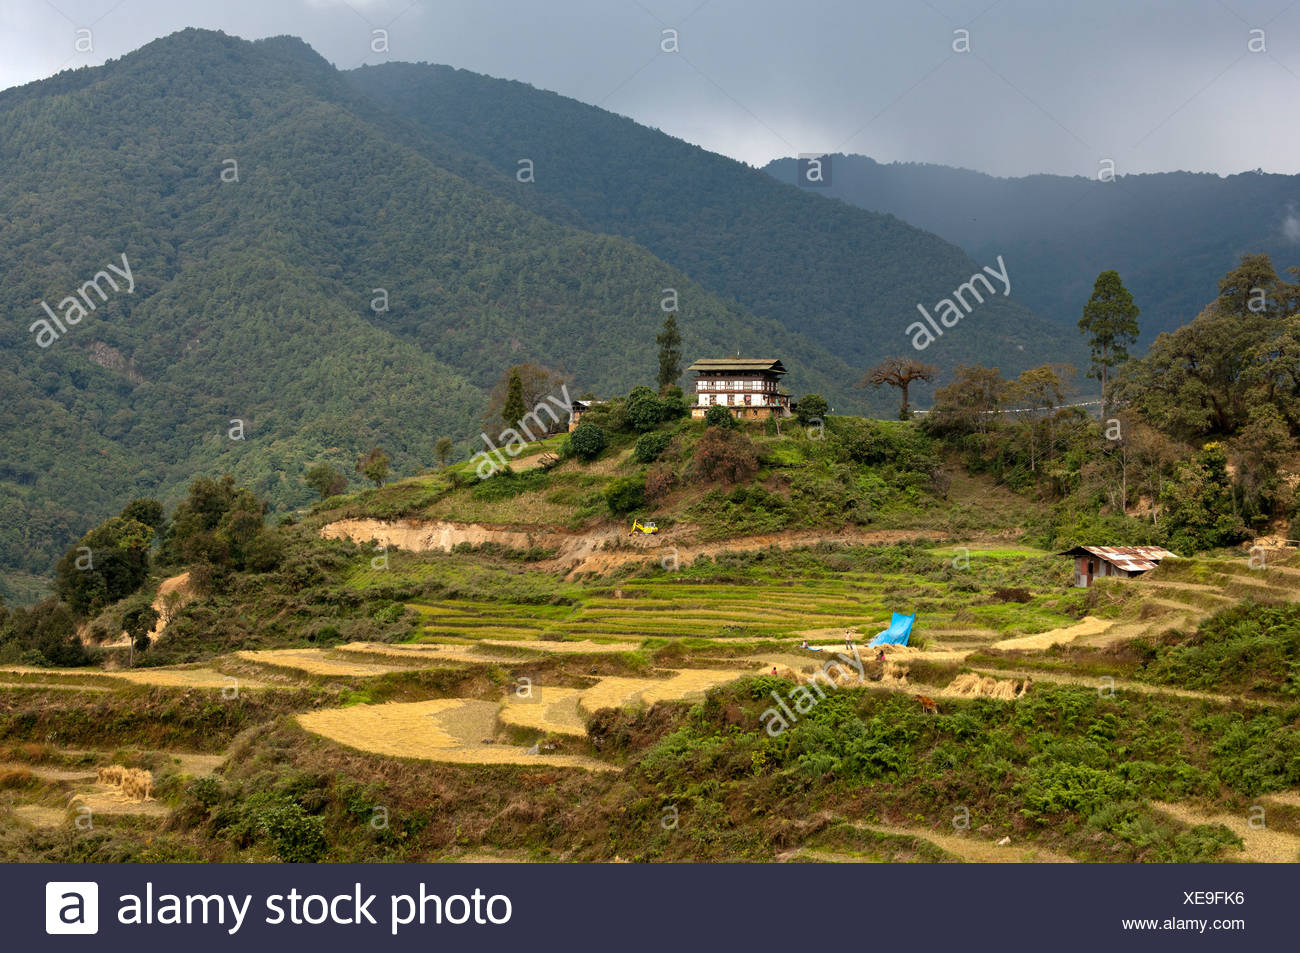 Farm in a landscape with terraced fields of rice, Bhutan, South Asia, Asia - Stock Image